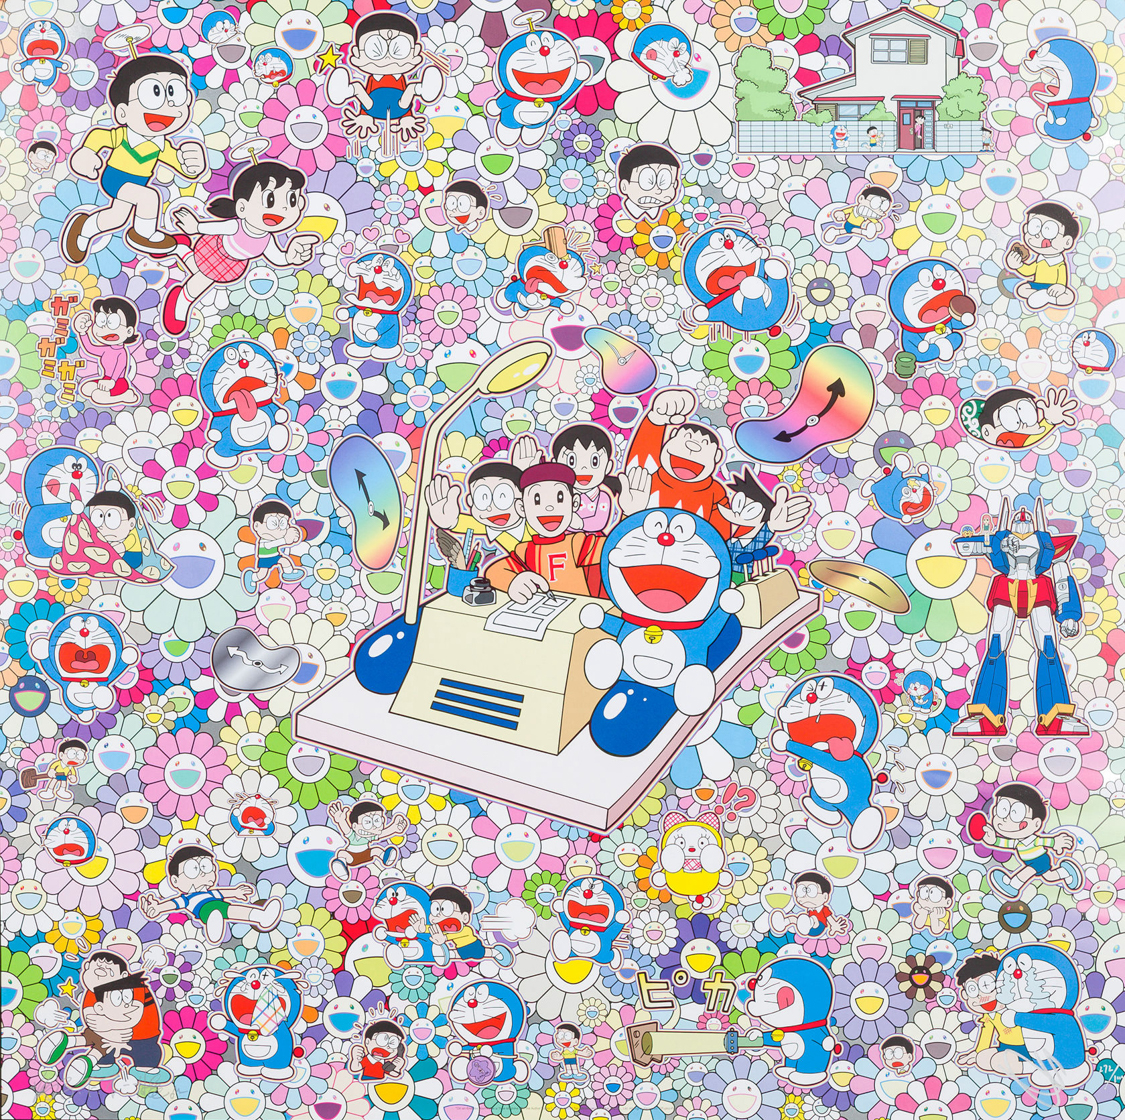 On an Endless Journey on a Time Machine with the Author Fujiko F. Fujio!